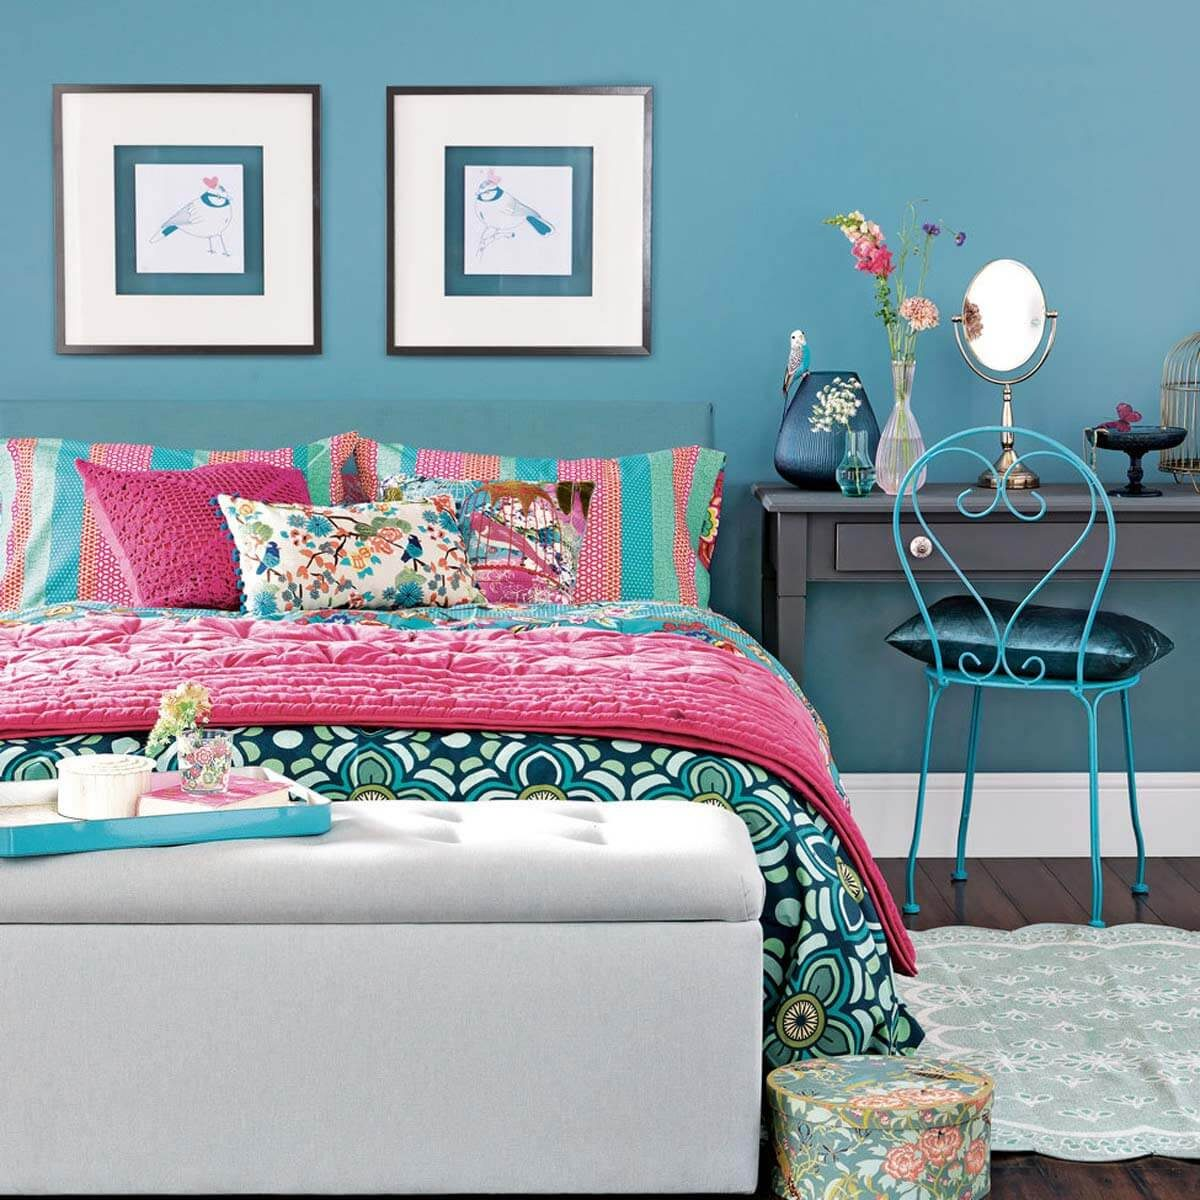 bright-floral-bedroom-with-teal-walls